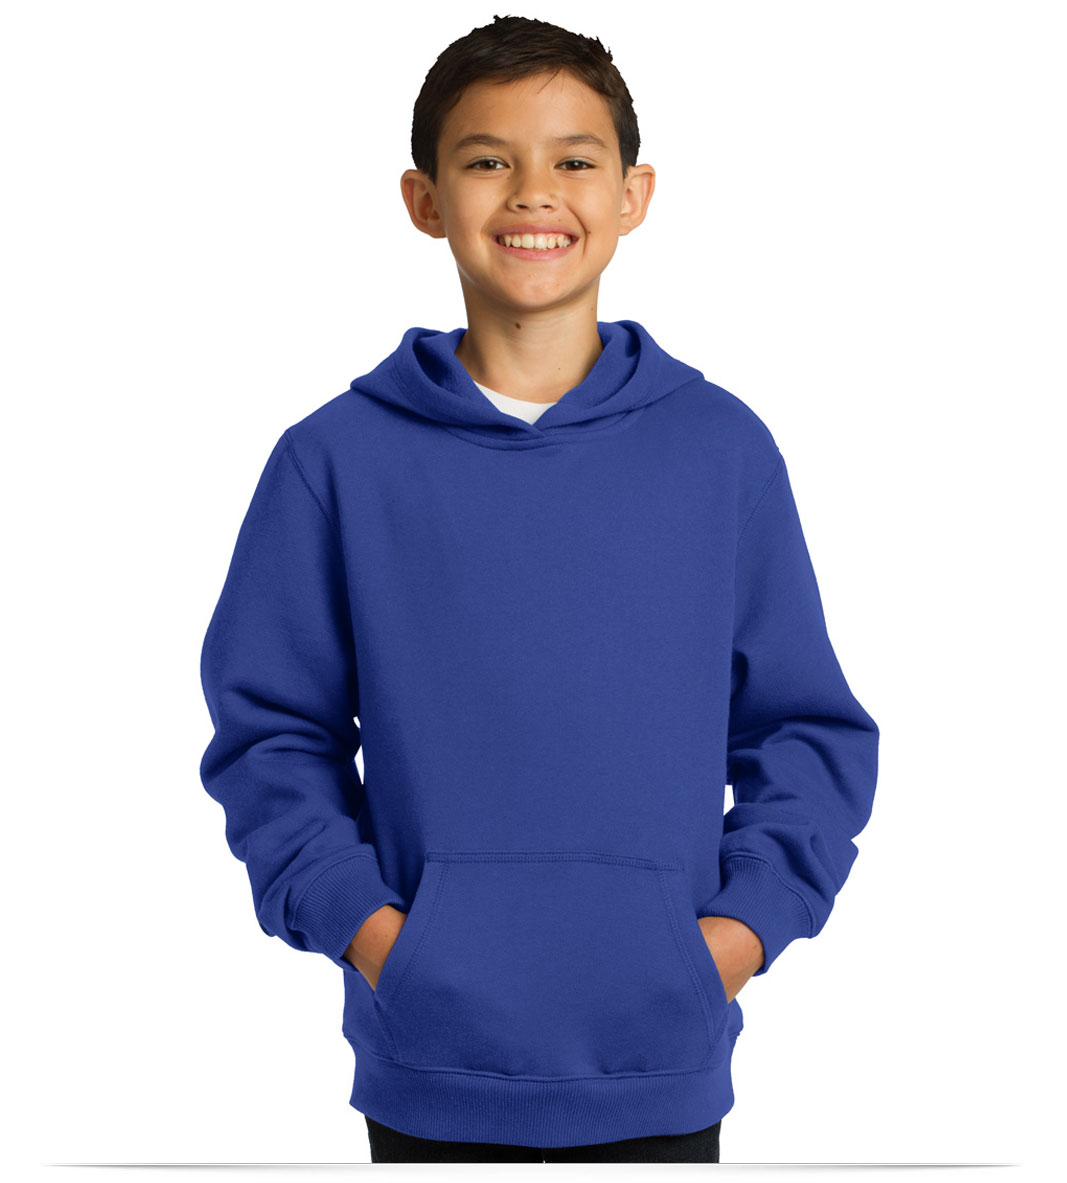 Customize Sport-Tek Youth Pullover Hooded Sweatshirt